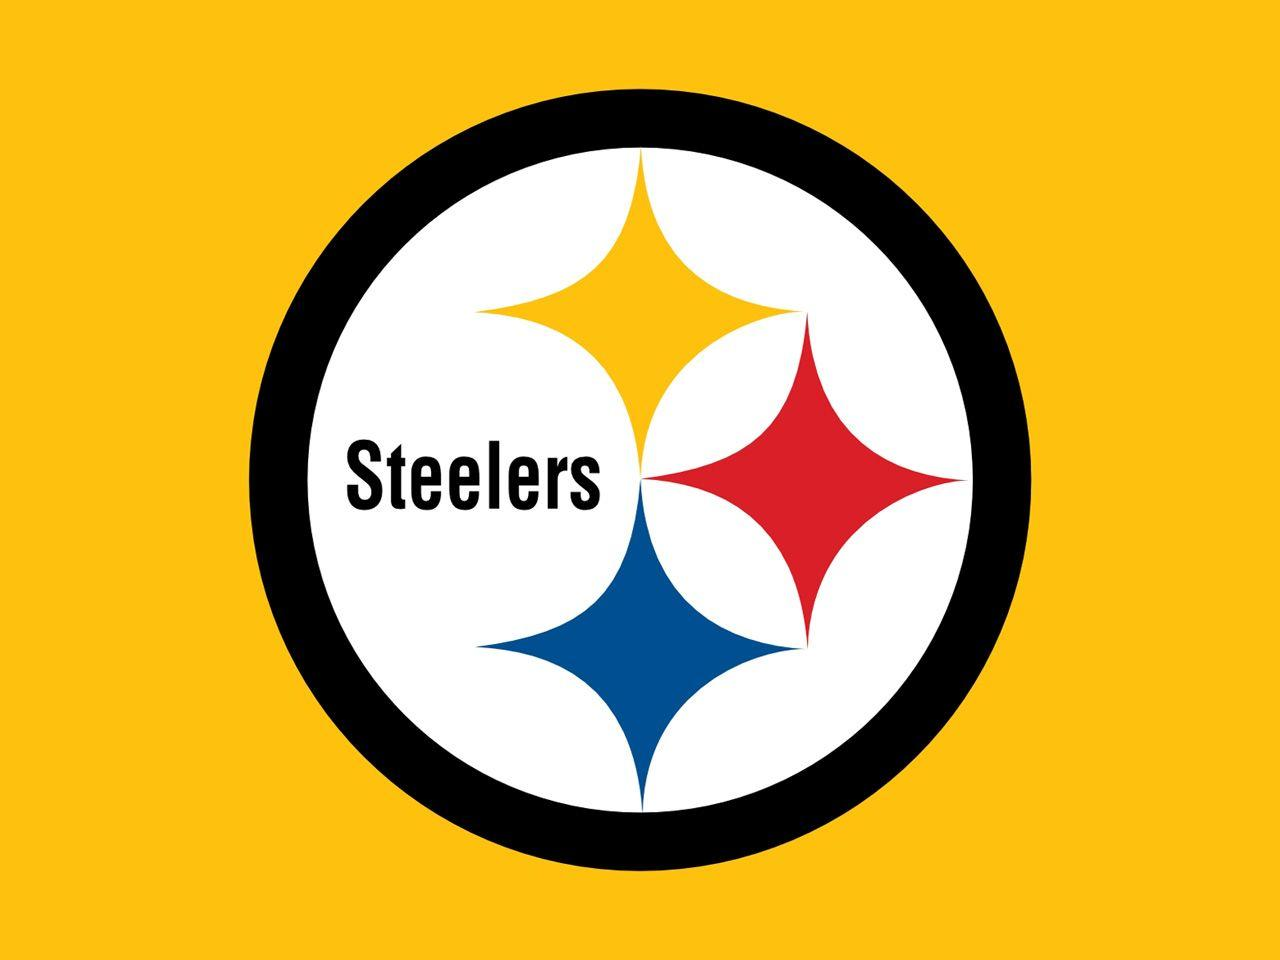 Pittsburgh Steelers Cool Wallpapers 26182 Images | wallgraf.